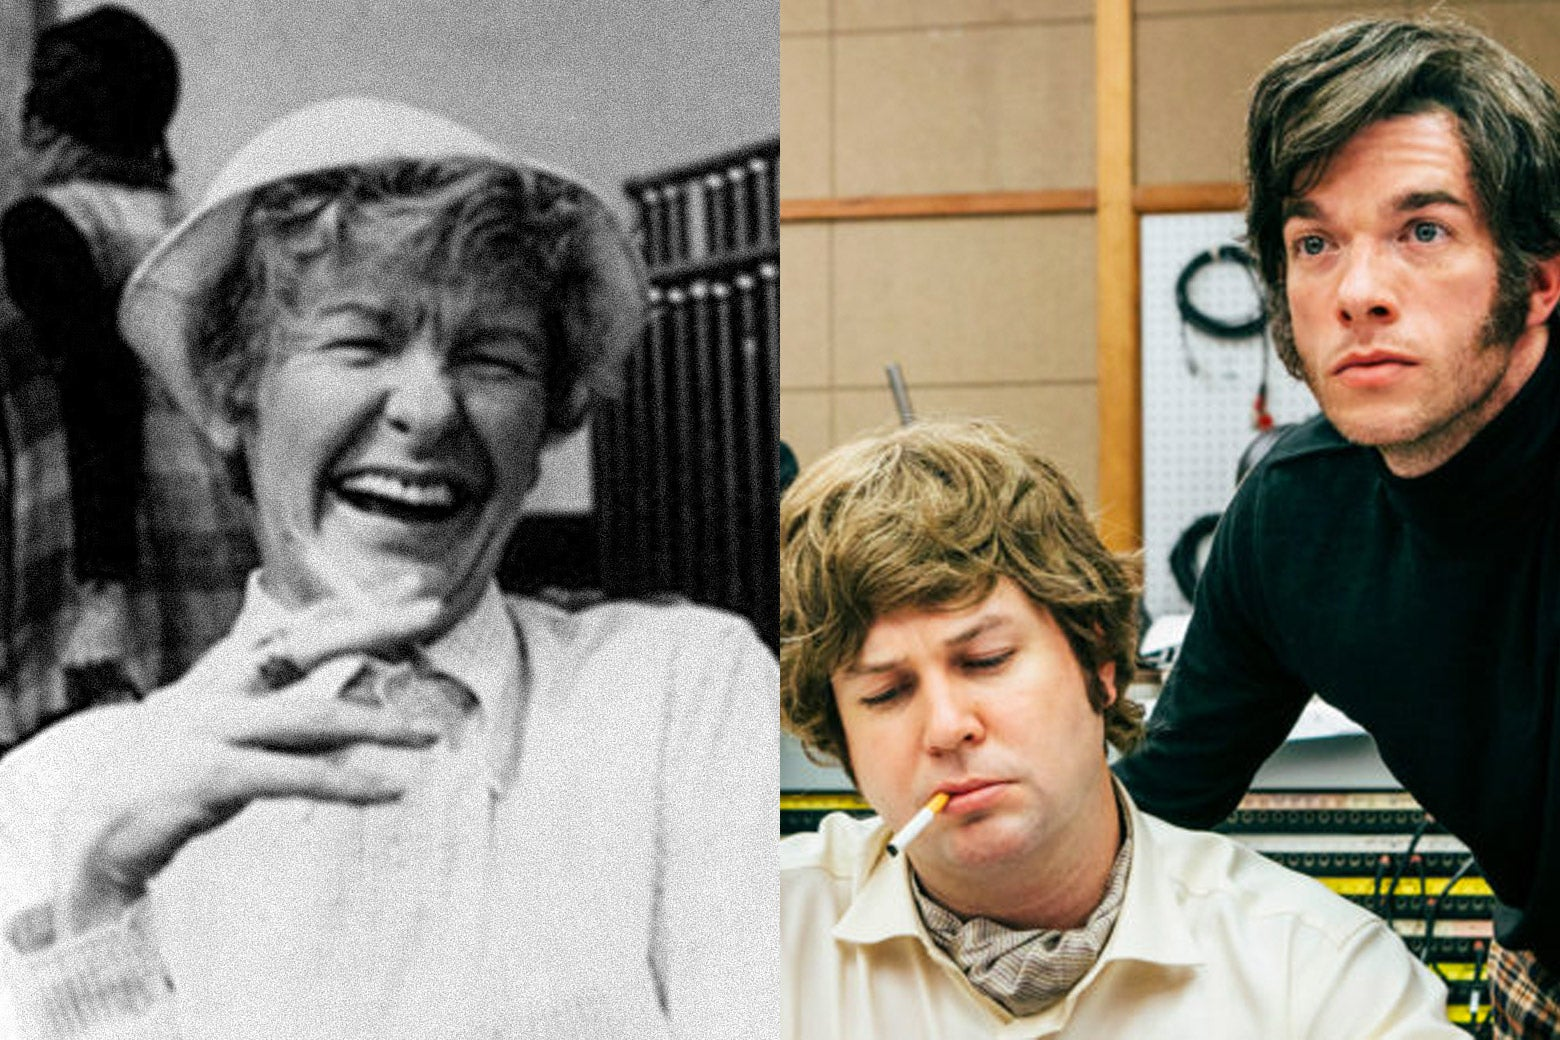 """Elaine Stritch in Original Cast Album: Company (left), Beck Bennett and John Mulaney in Documentary Now's """"Co-Op"""" (right)."""